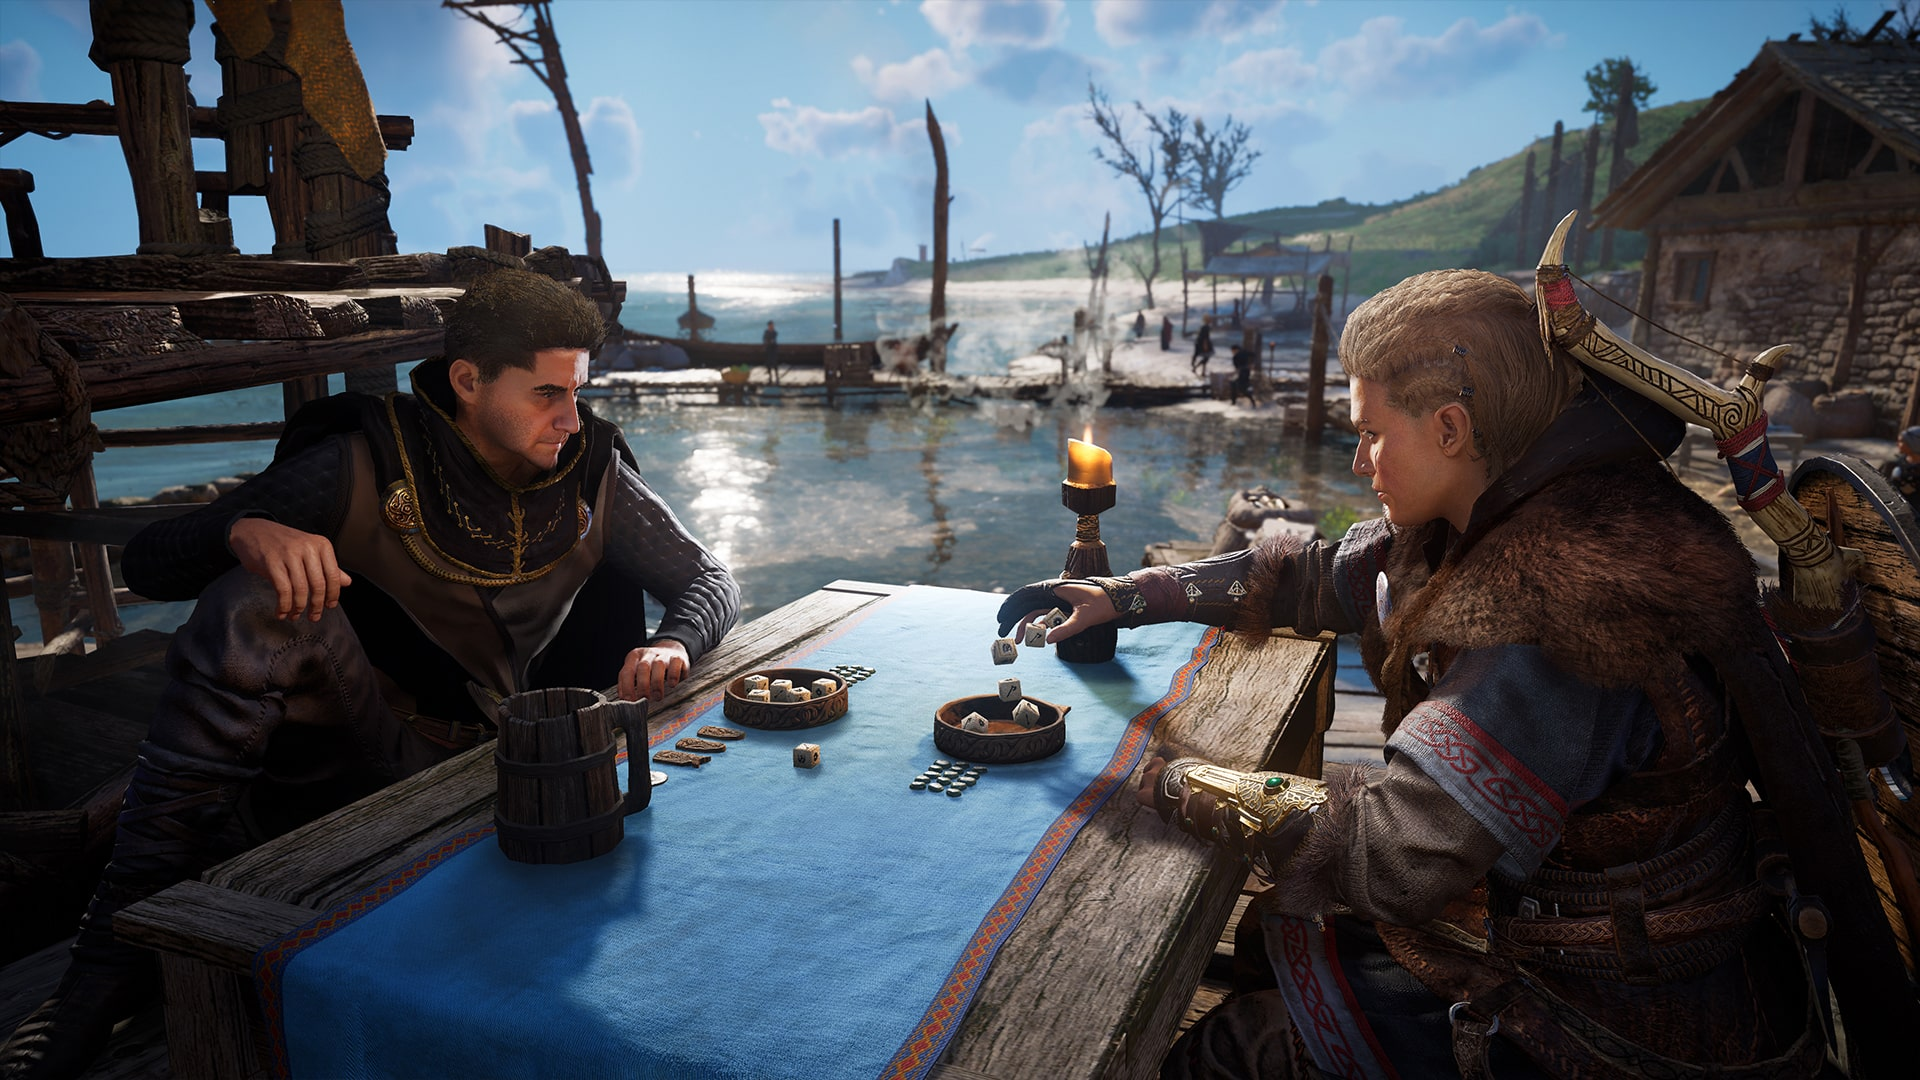 new serials serialized storytelling video games industry usurping TV, movies with huge epic saga narratives like Ghost of Tsushima, Days Gone, Assassin's Creed Valhalla